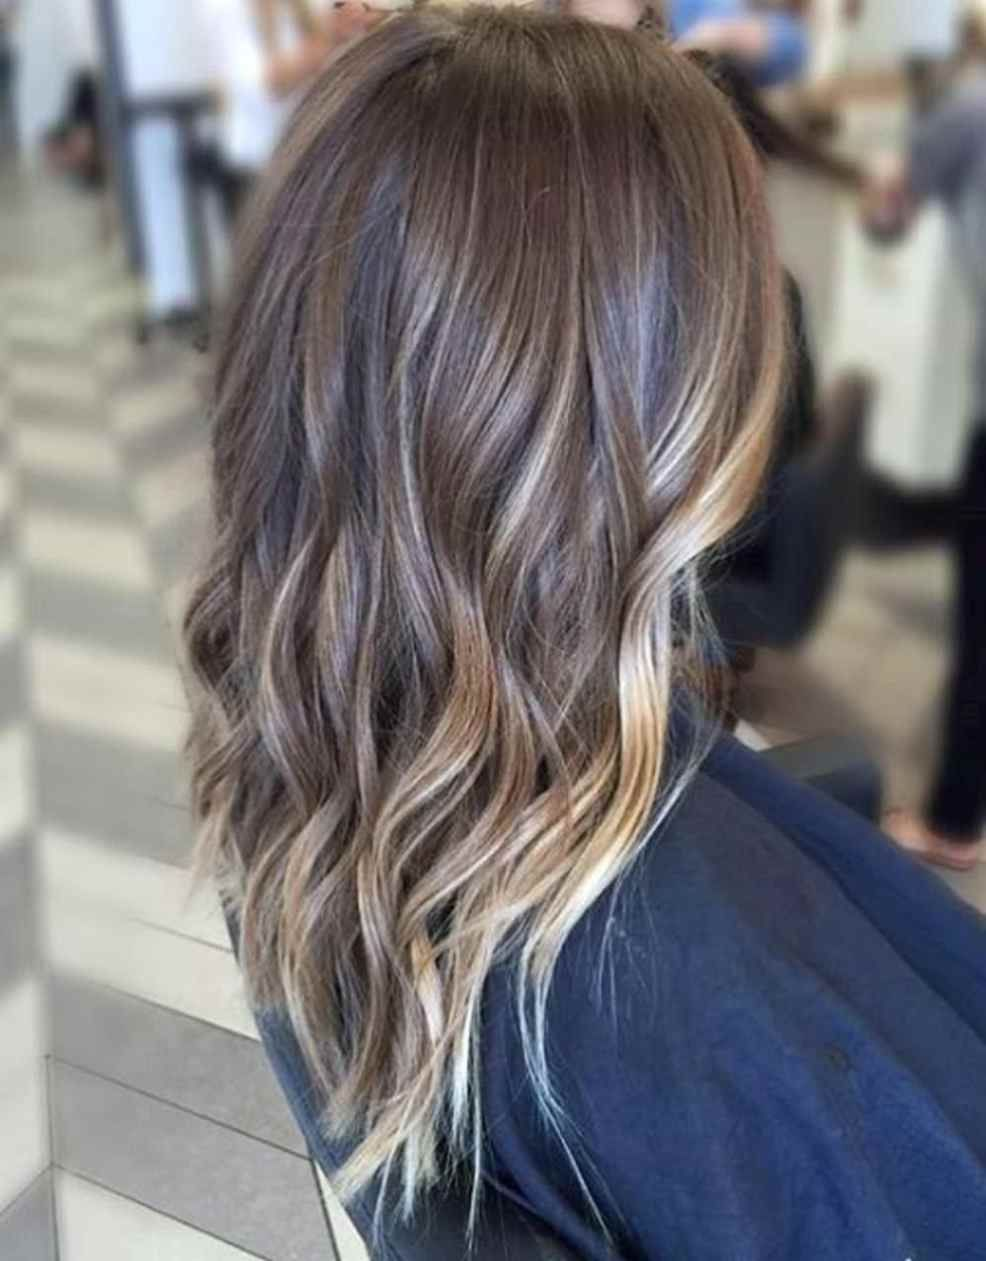 Best Balayage Hair Color Ideas: 70 Flattering Styles for 2018 | Haar ...